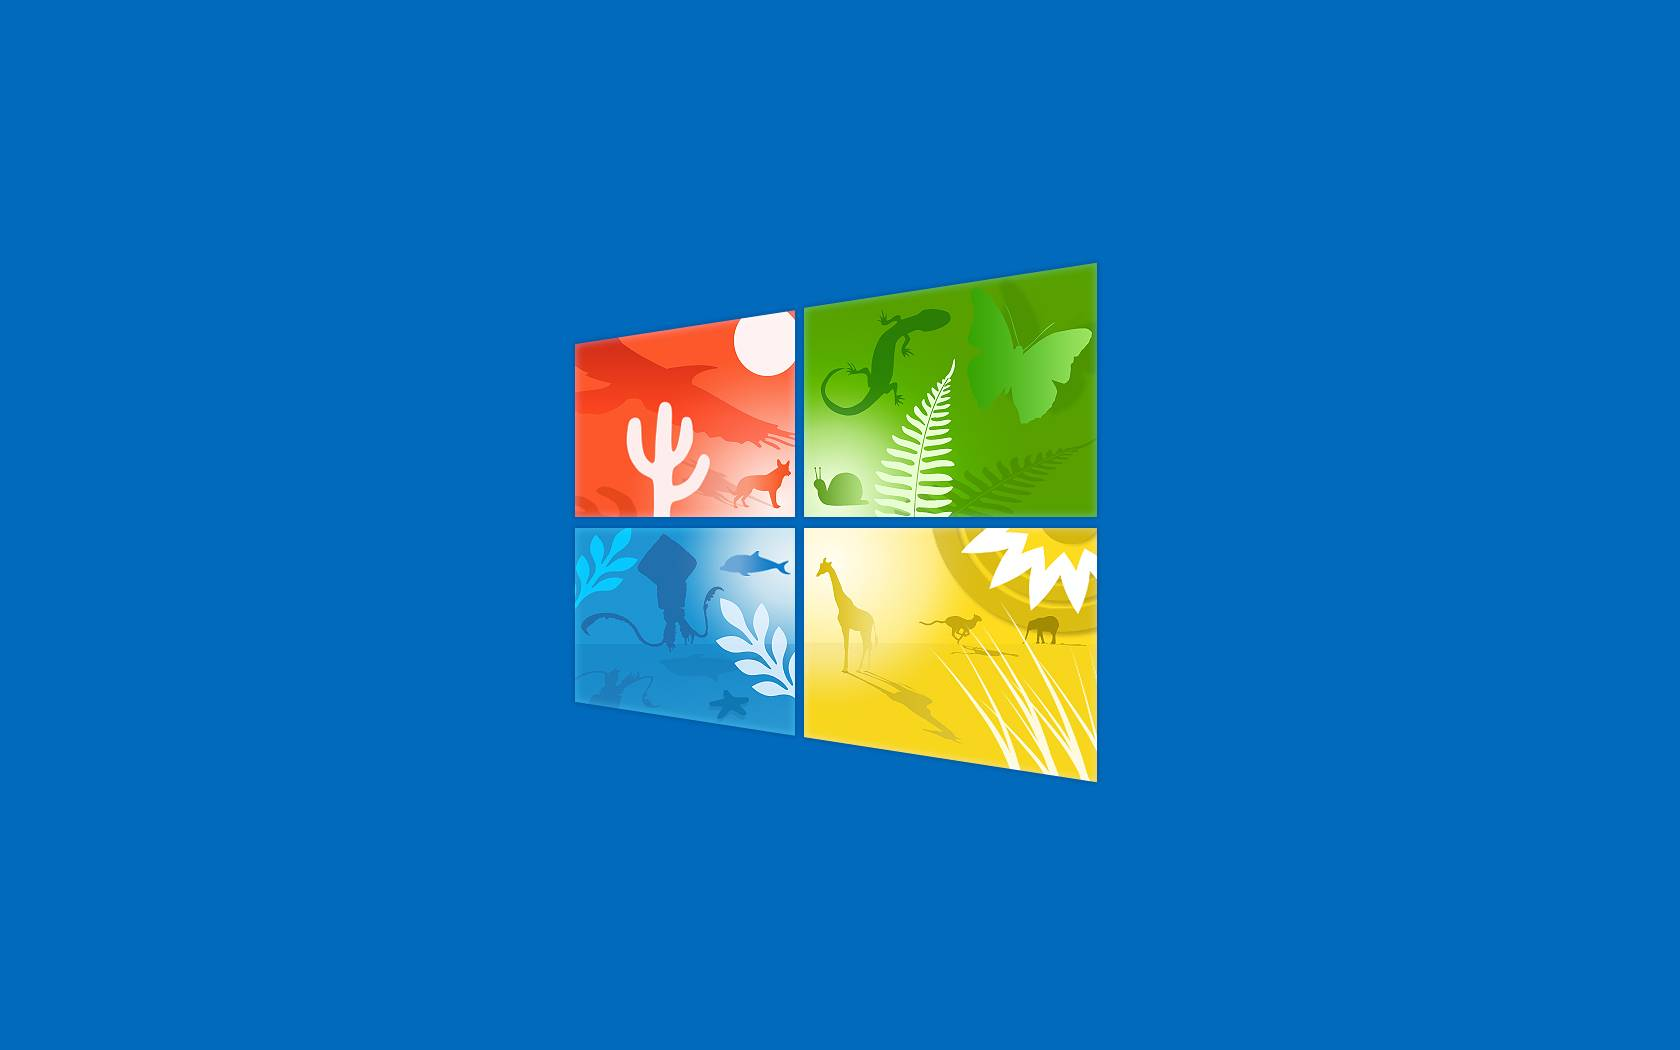 Windows-10-HD-Wallpaper-34